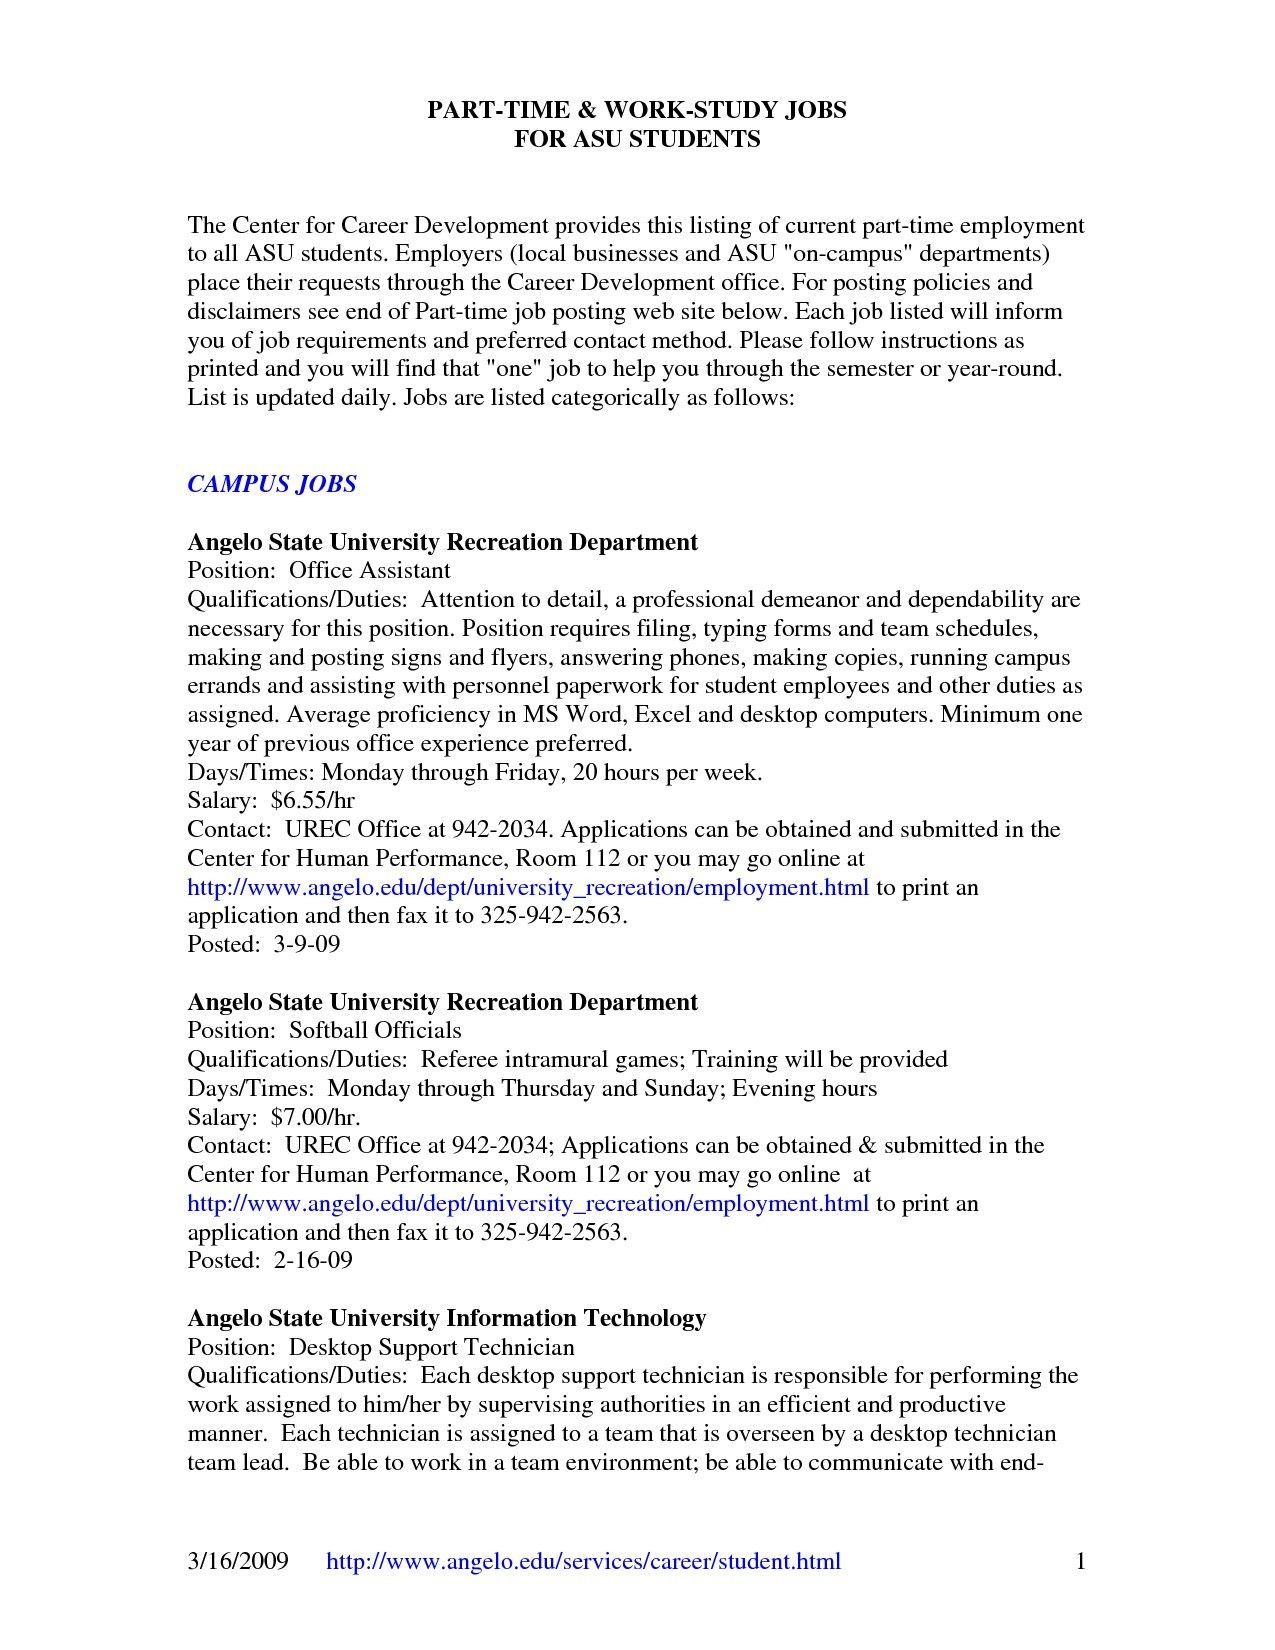 Resume Templates For 16 Year Olds Resume Resumetemplates Templates Resume Examples Job Resume Examples Resume Templates